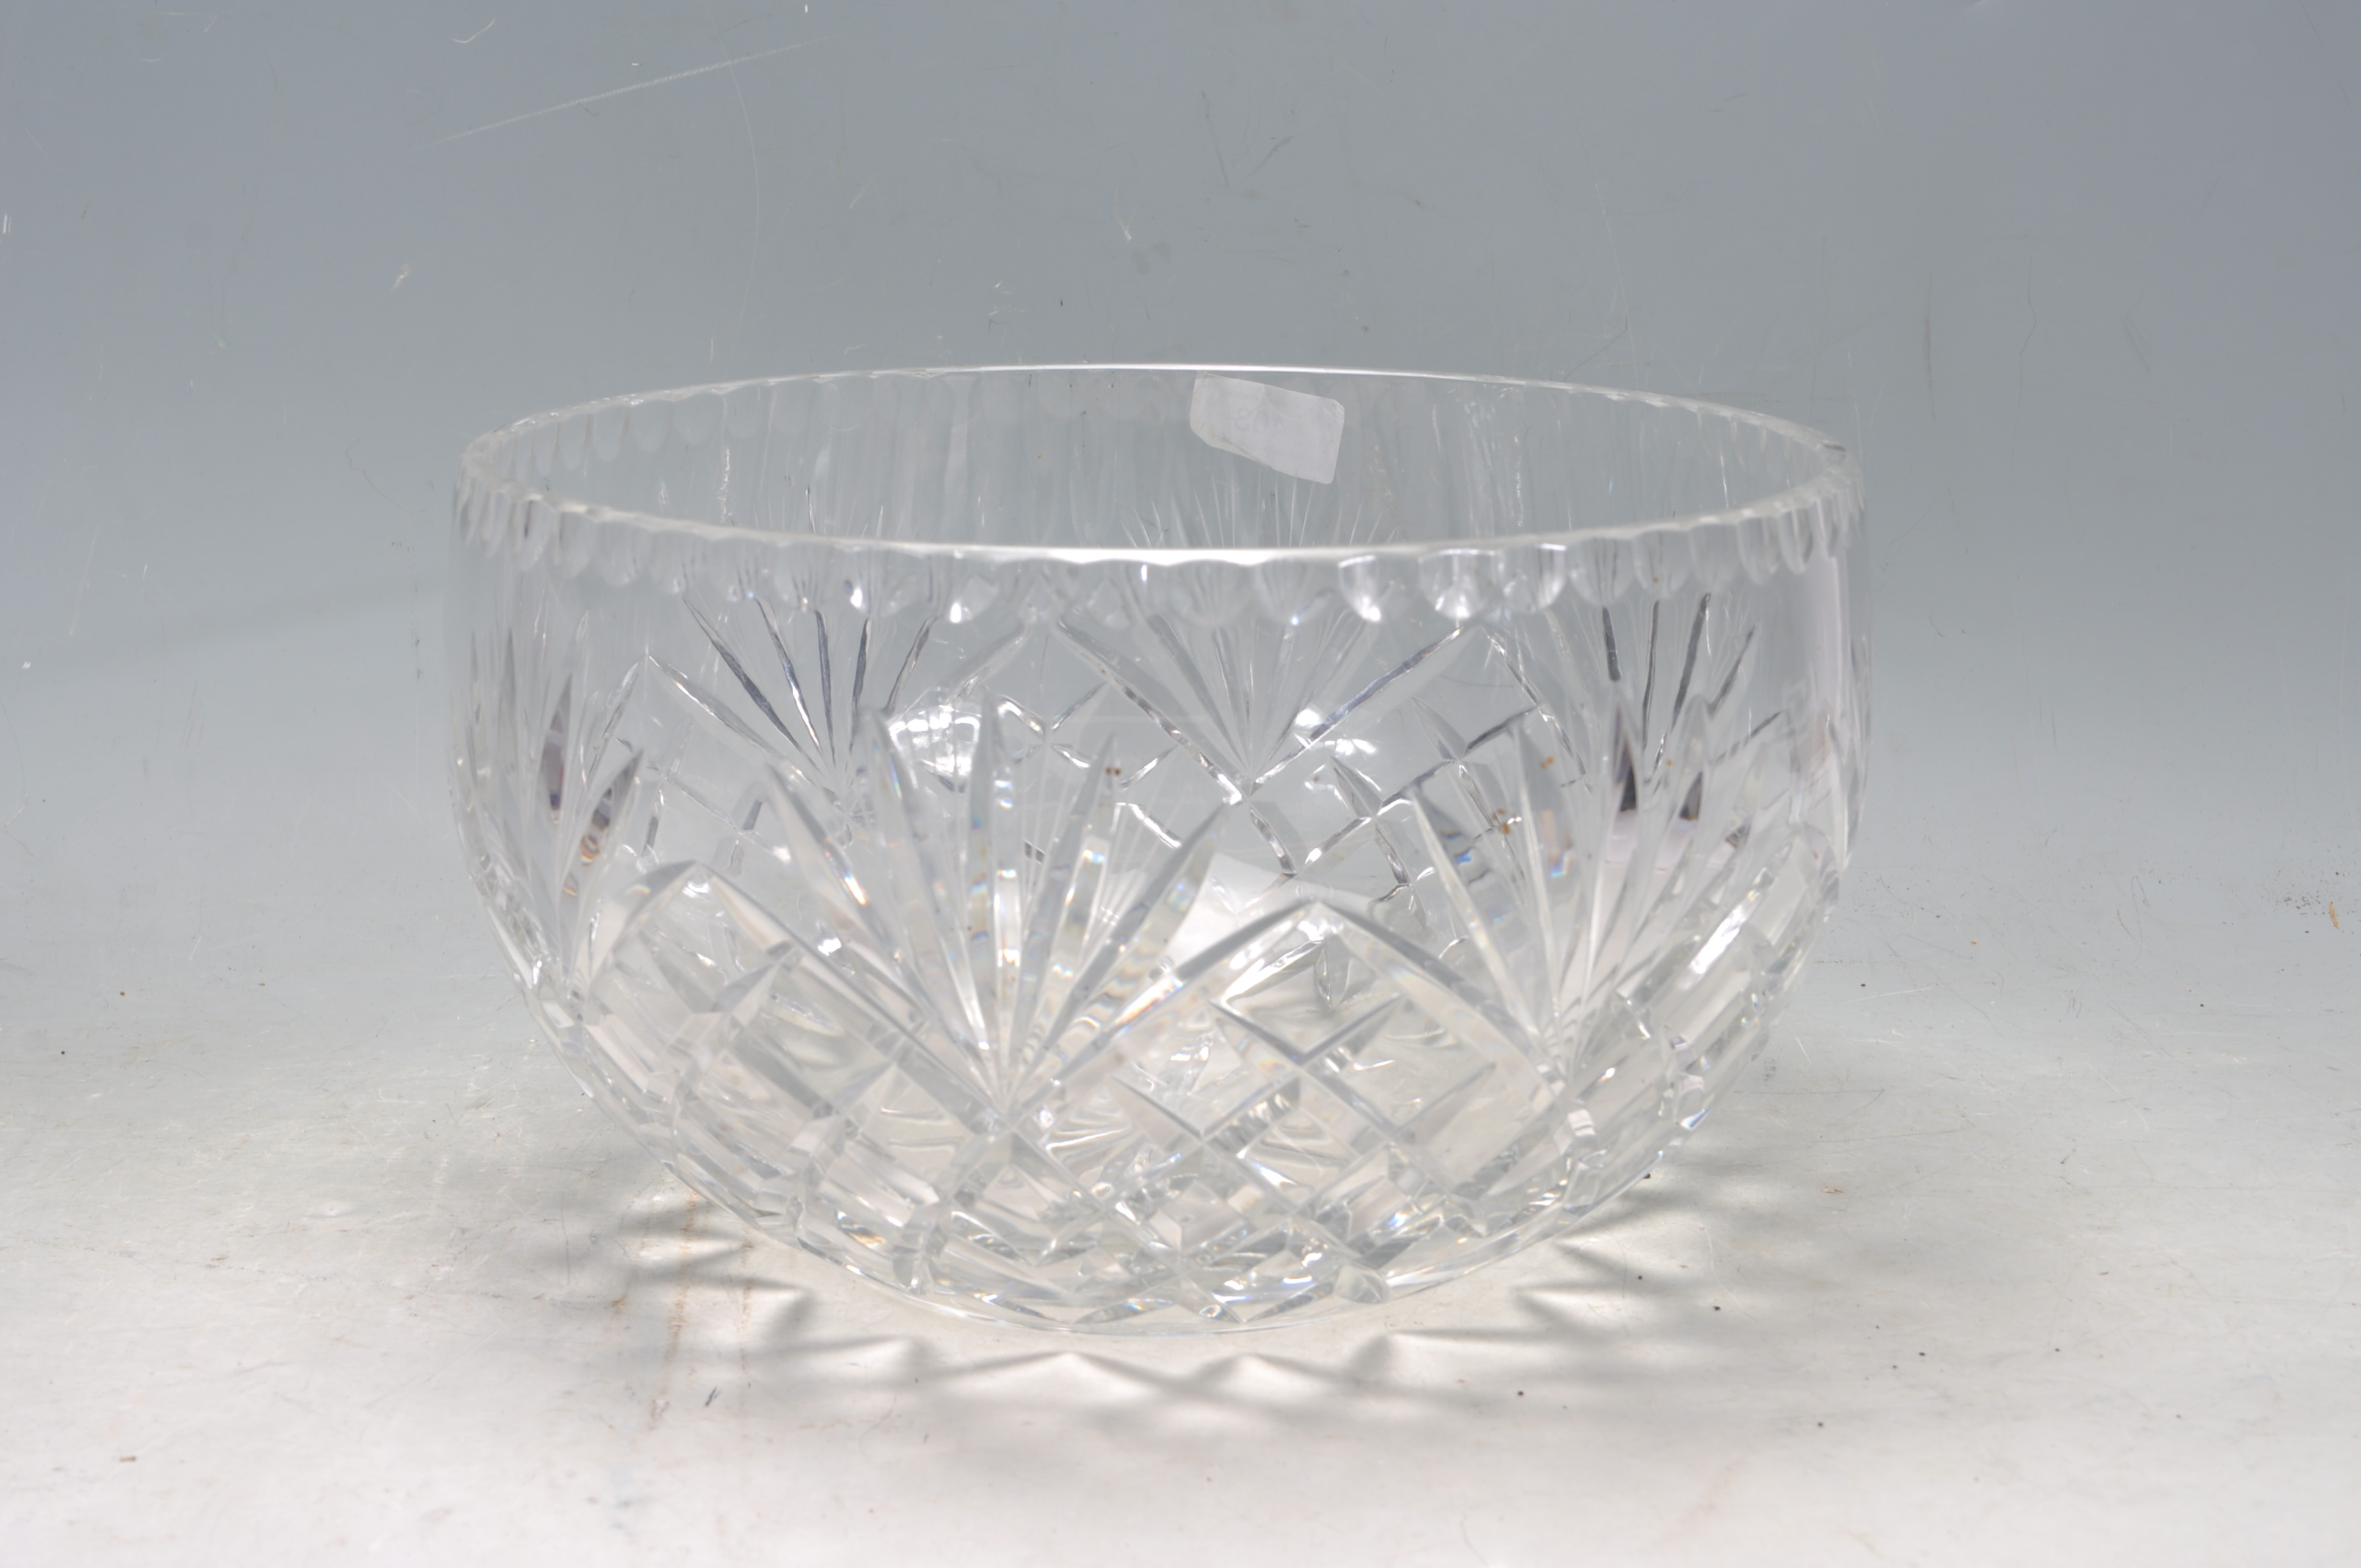 VINTAGE 20TH CENTURY WATERFORD CRYSTAL GLASS BOWL - Image 3 of 5